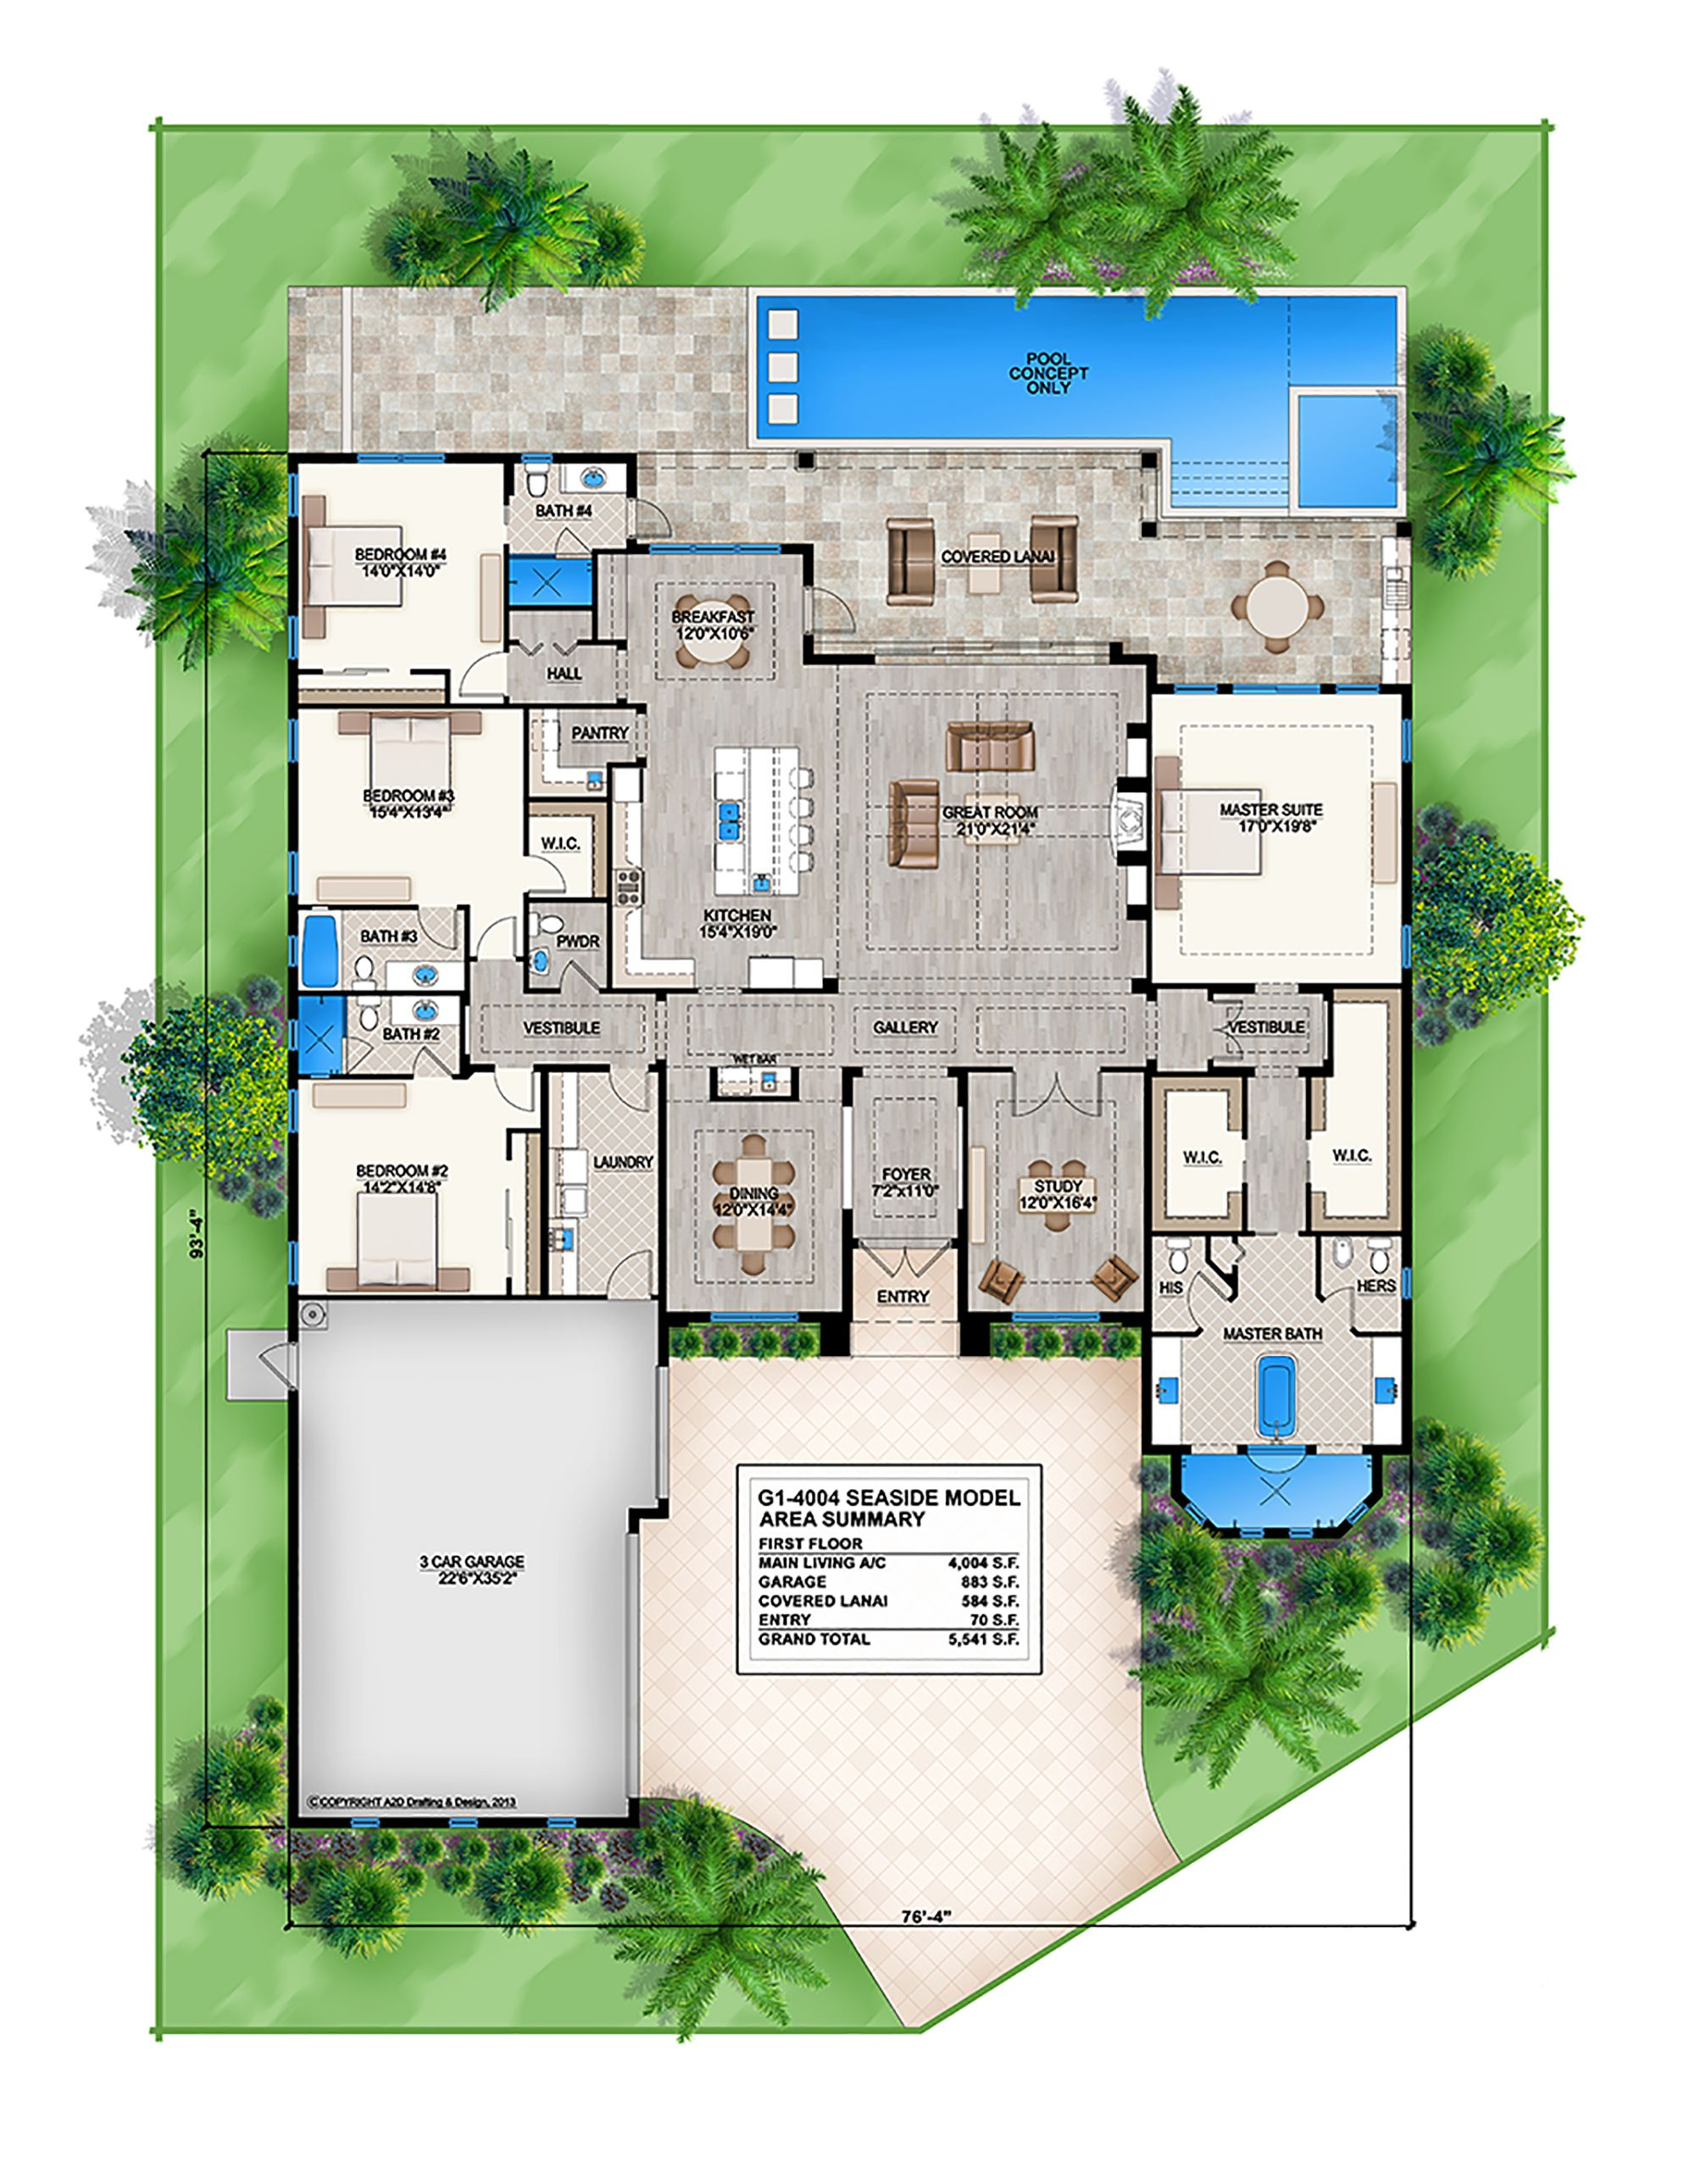 offered by south florida design this 2 story coastal contemporary offered by south florida design this 2 story coastal contemporary house plan features great room